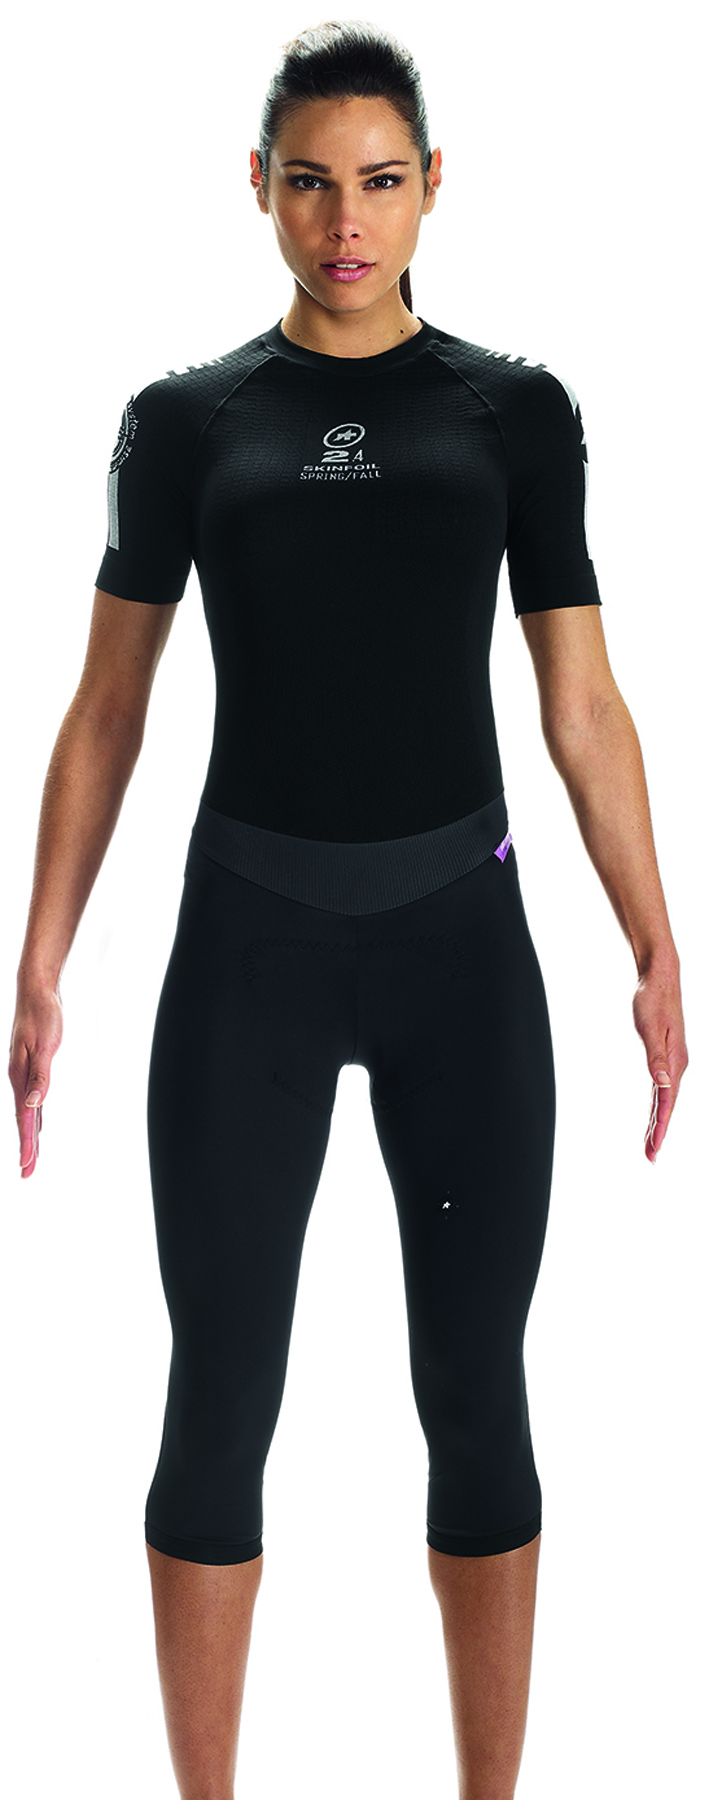 assos - HK.laalaLai s7 3 4 Tights